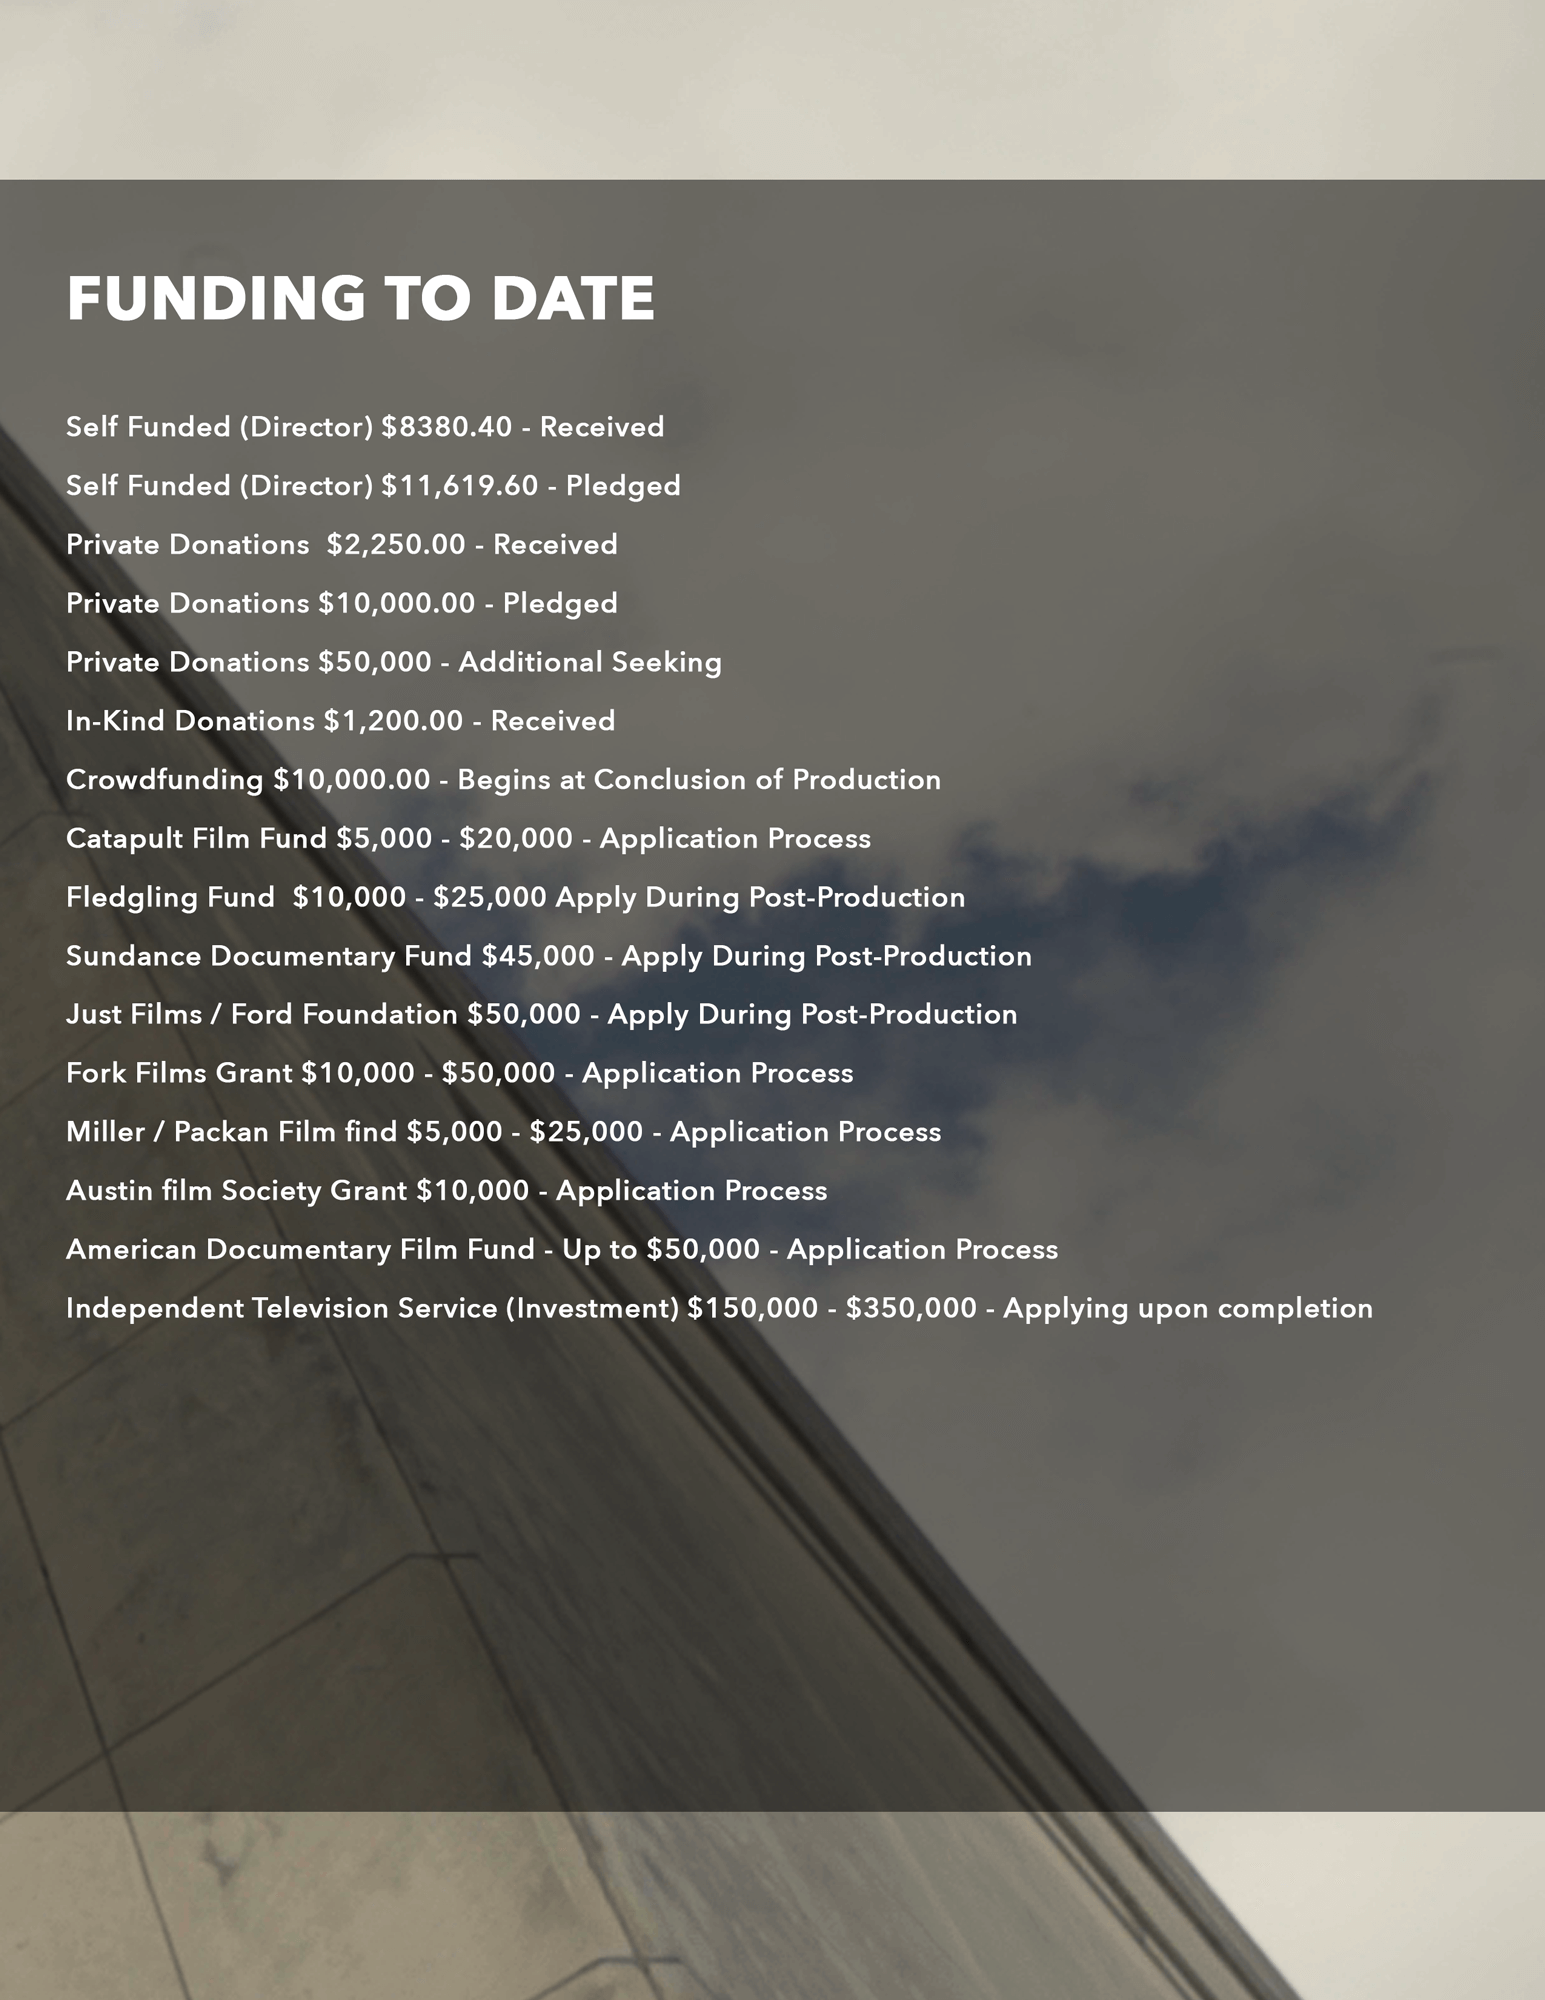 fundingtodate.png